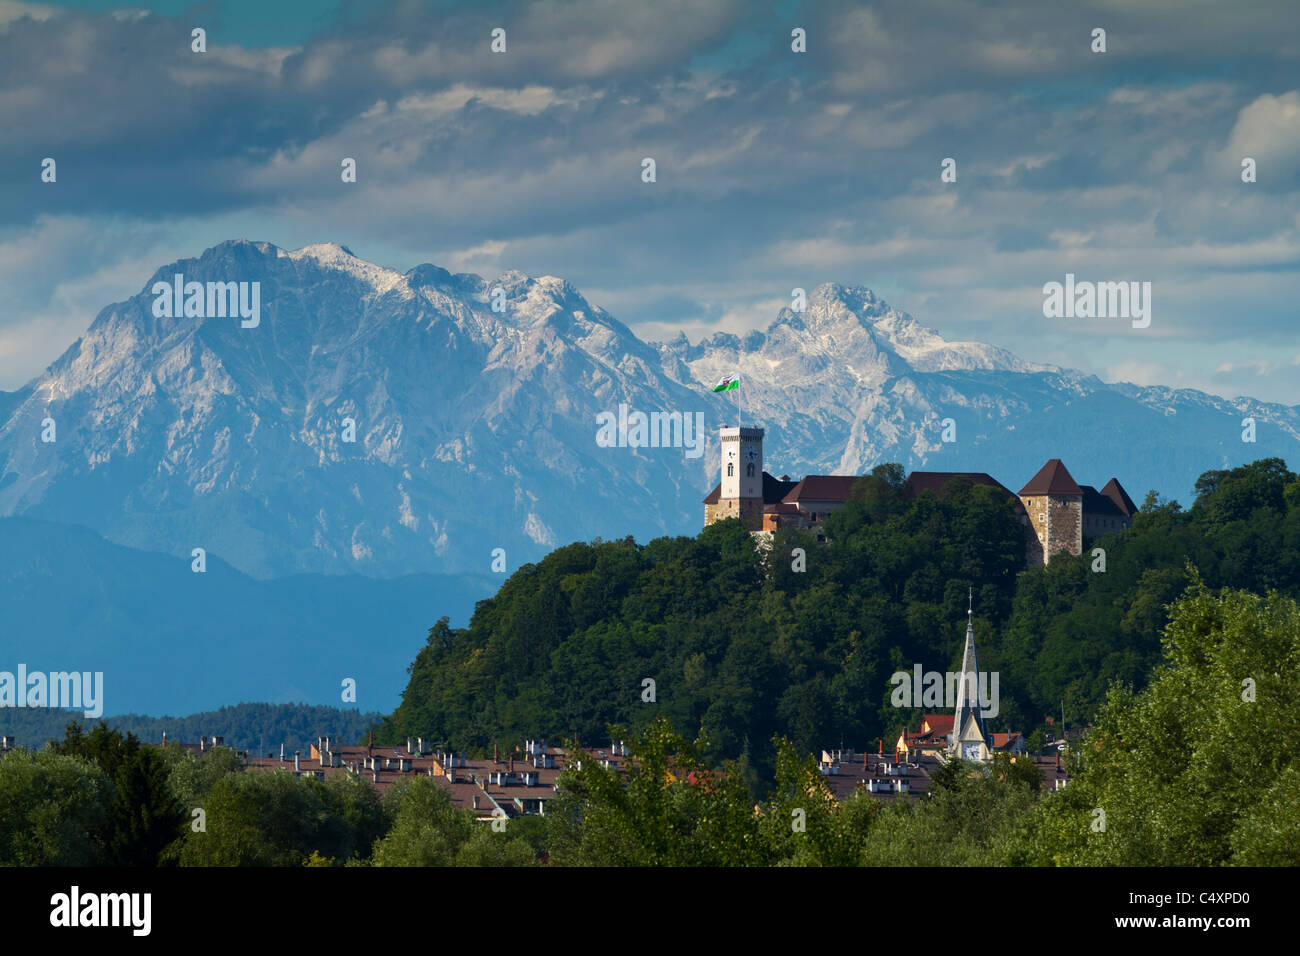 Ljubljana Castle, Slovenia, with the Kamnik Alps behind it. - Stock Image